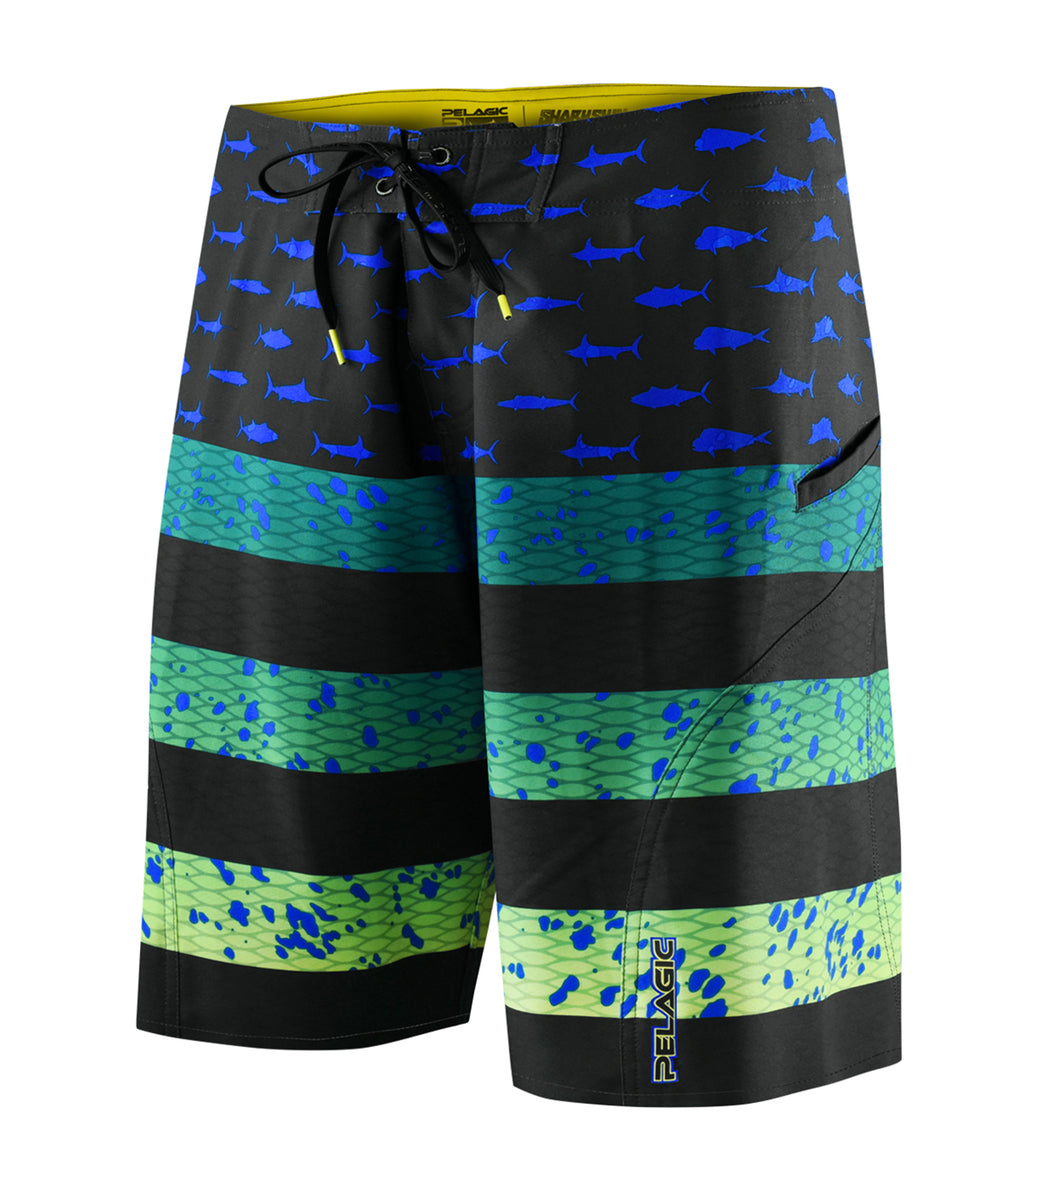 Sharkskin Americamo Fishing Boardshort - Youth Big Image - 5